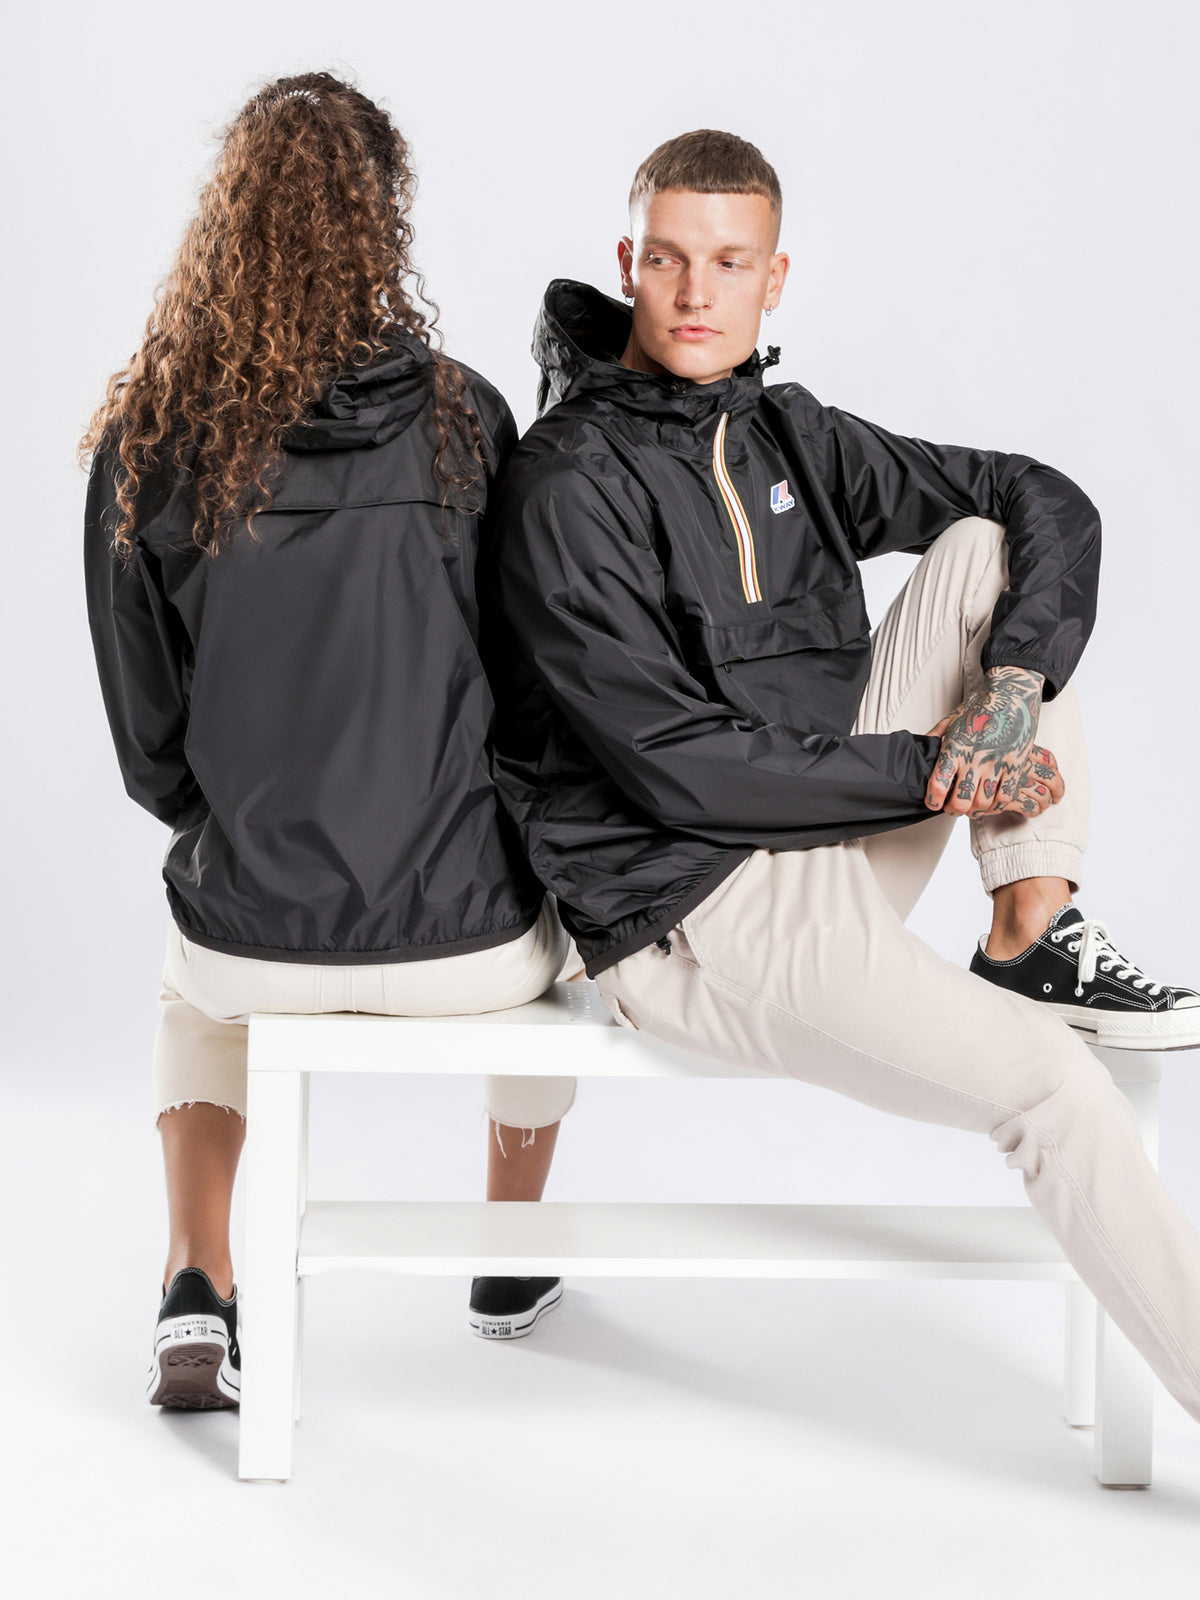 Le Vrai Leon 3.0 Packable Waterproof Half-Zip Windbreaker in Black